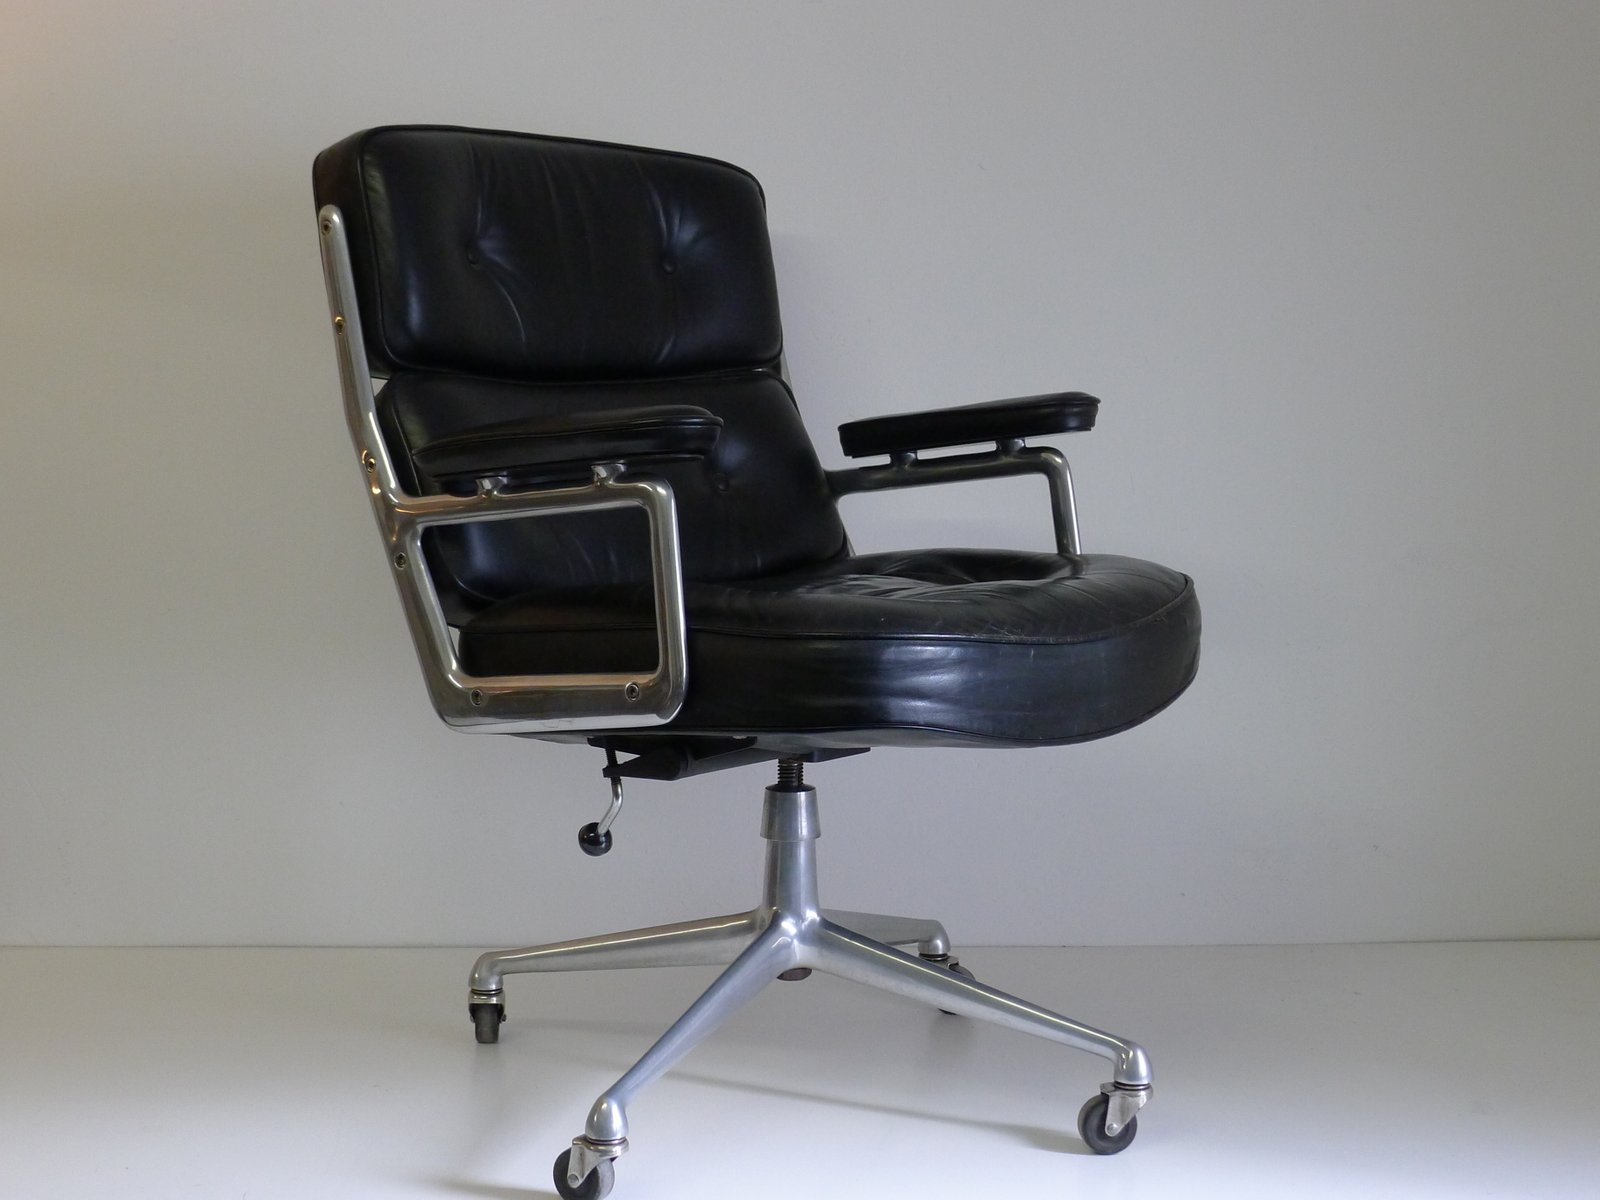 Sessel Charles Eames Es104 Time Life Lobby Sessel Von Ray And Charles Eames Für